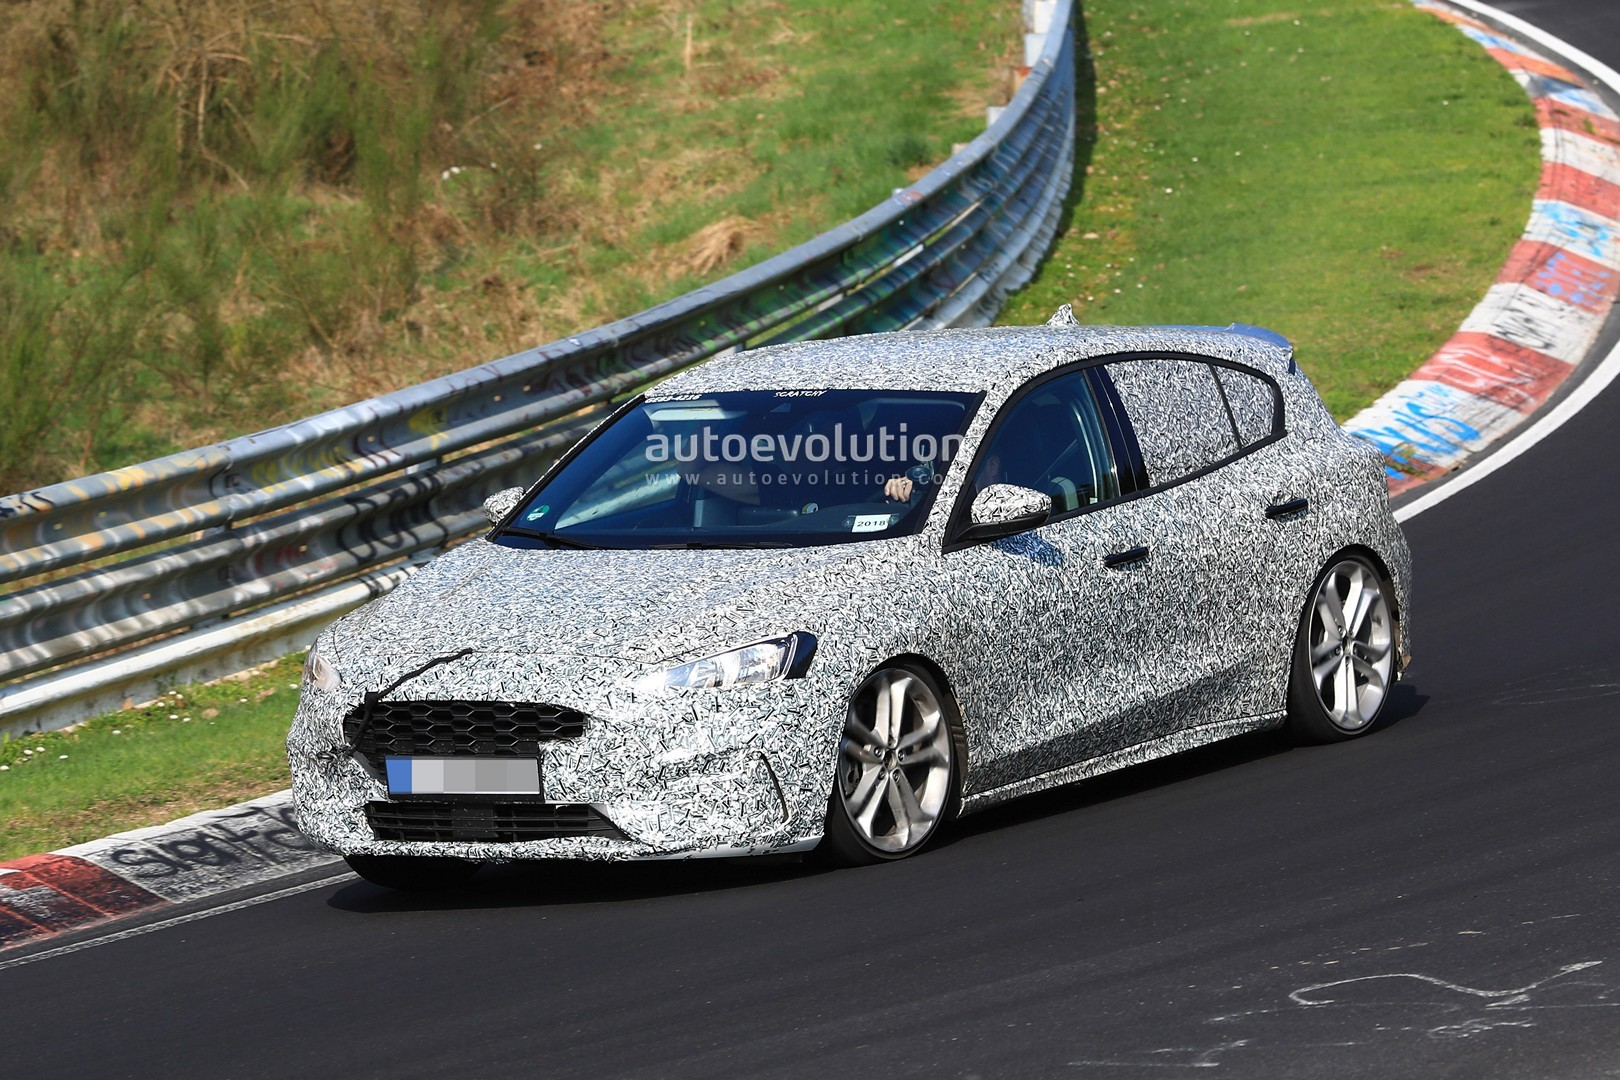 spyshots 2020 ford focus st hits nurburgring 8 speed. Black Bedroom Furniture Sets. Home Design Ideas